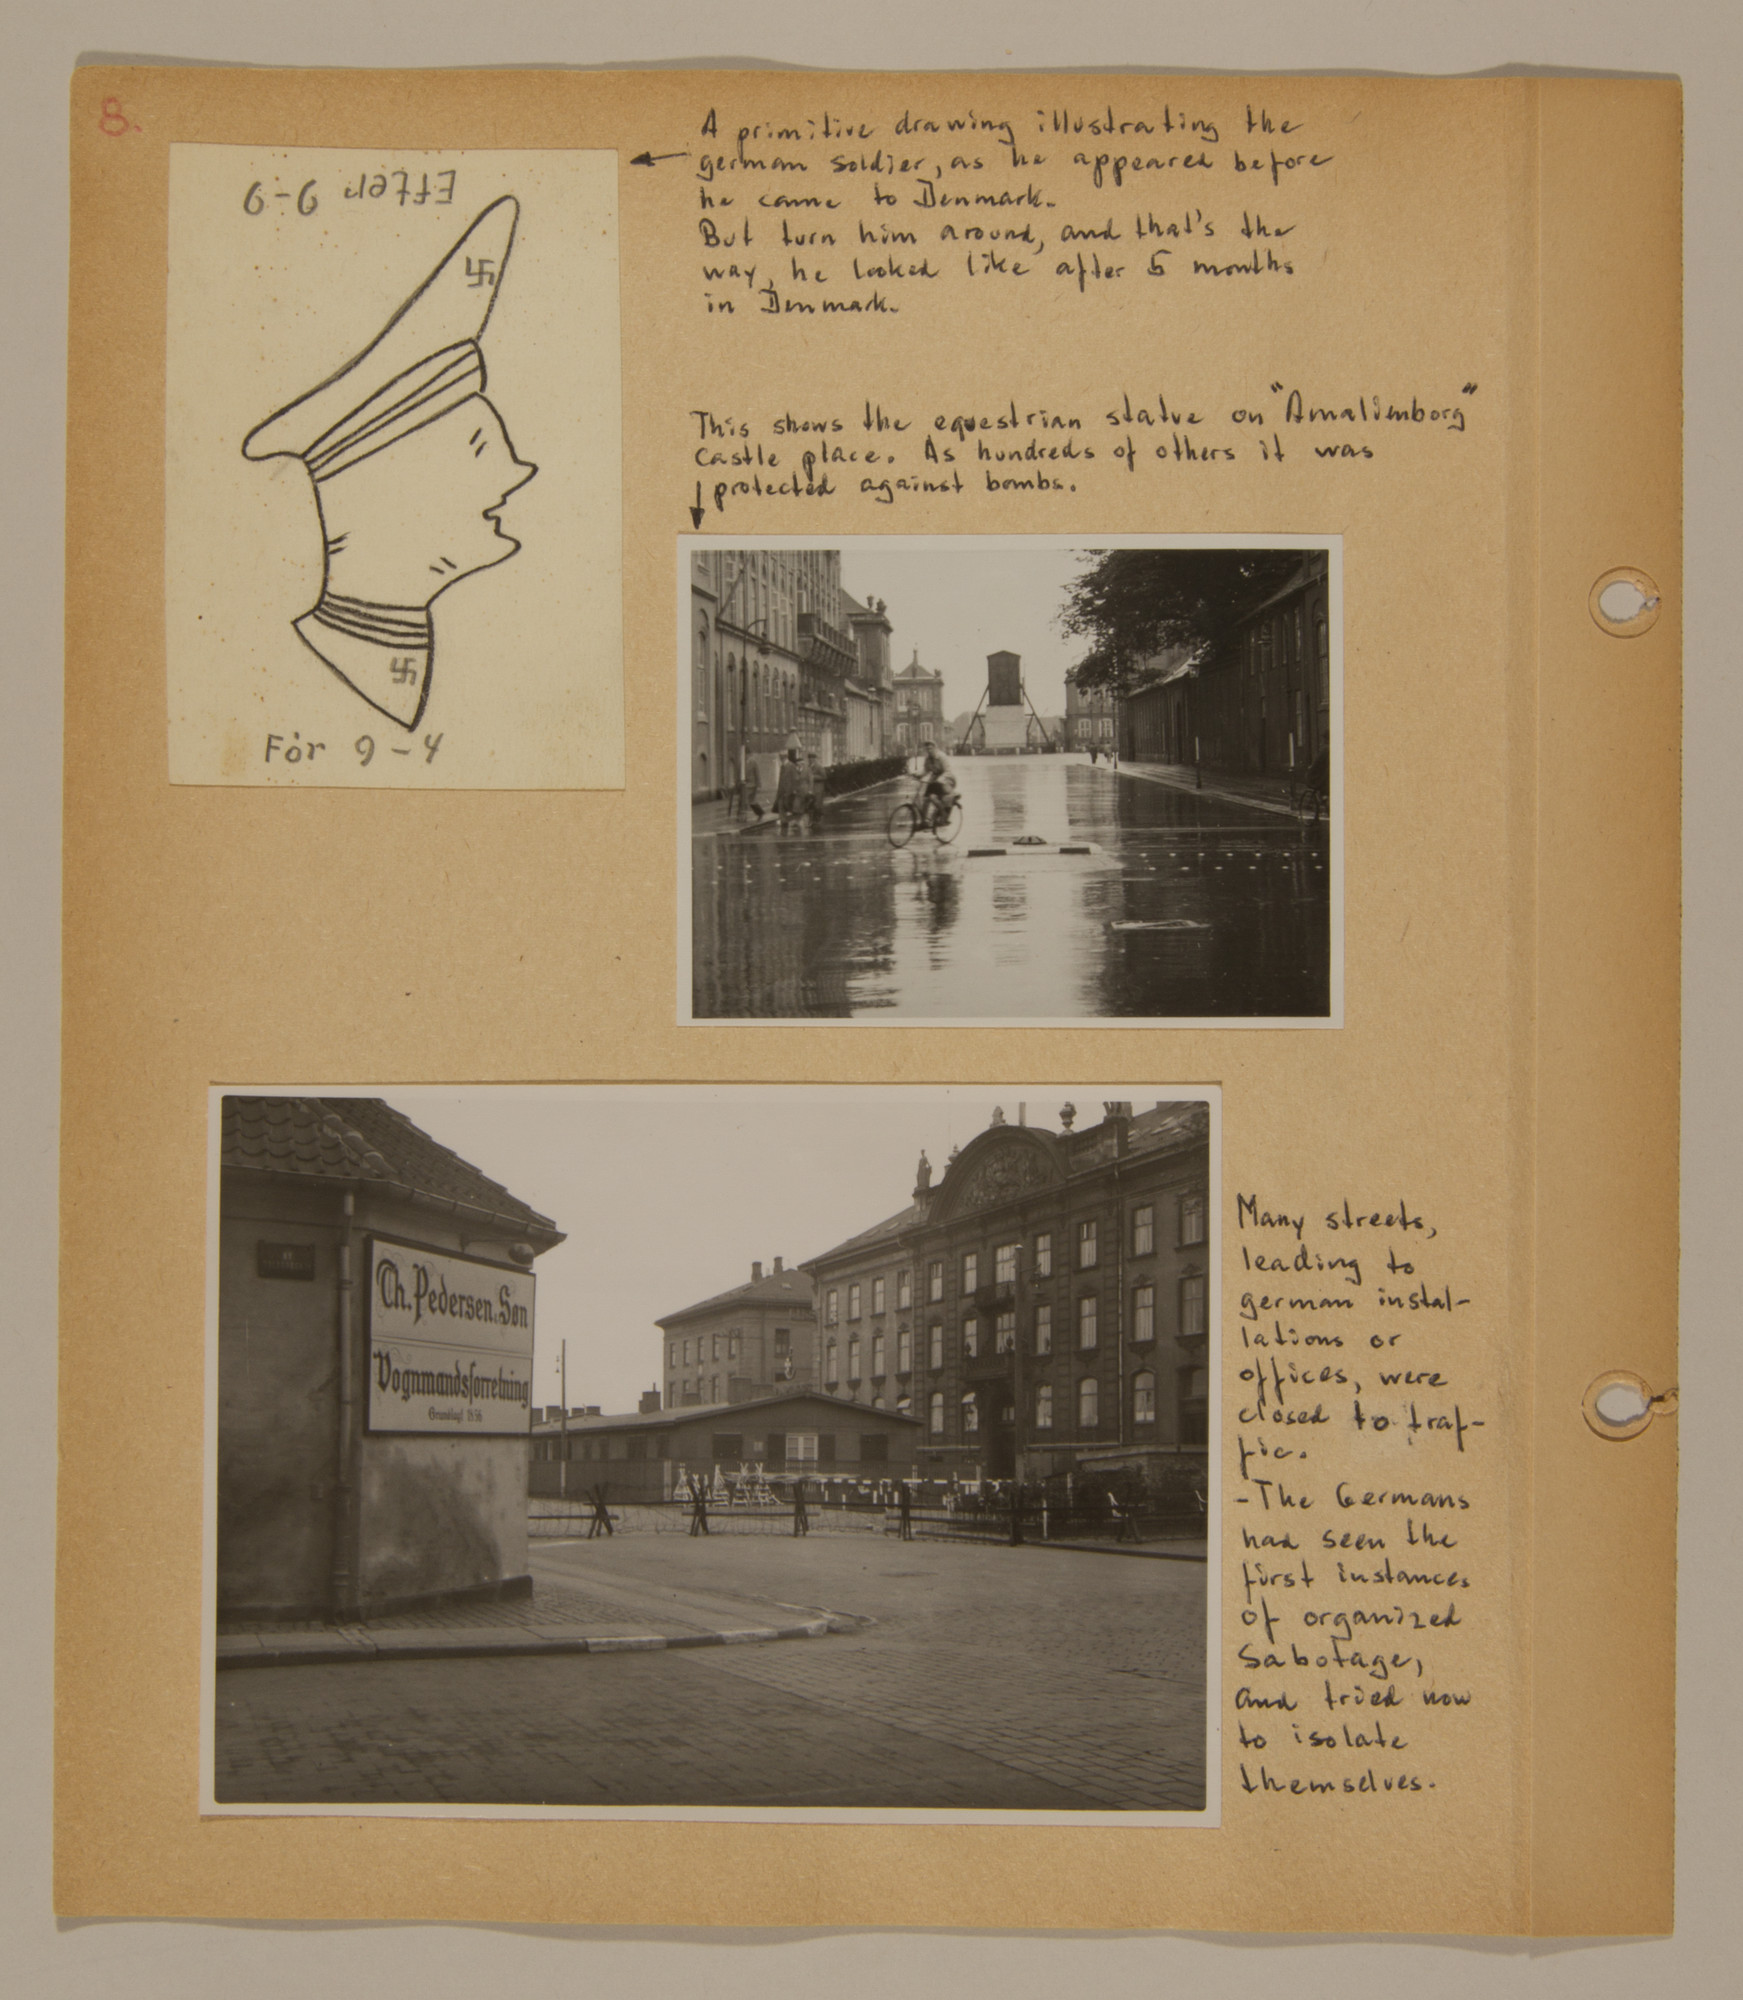 Page from volume two of a set of scrapbooks compiled by Bjorn Sibbern, a Danish policeman and resistance member, documenting the German occupation of Denmark.  This page has photographs of barricaded streets to prevent sabotage.